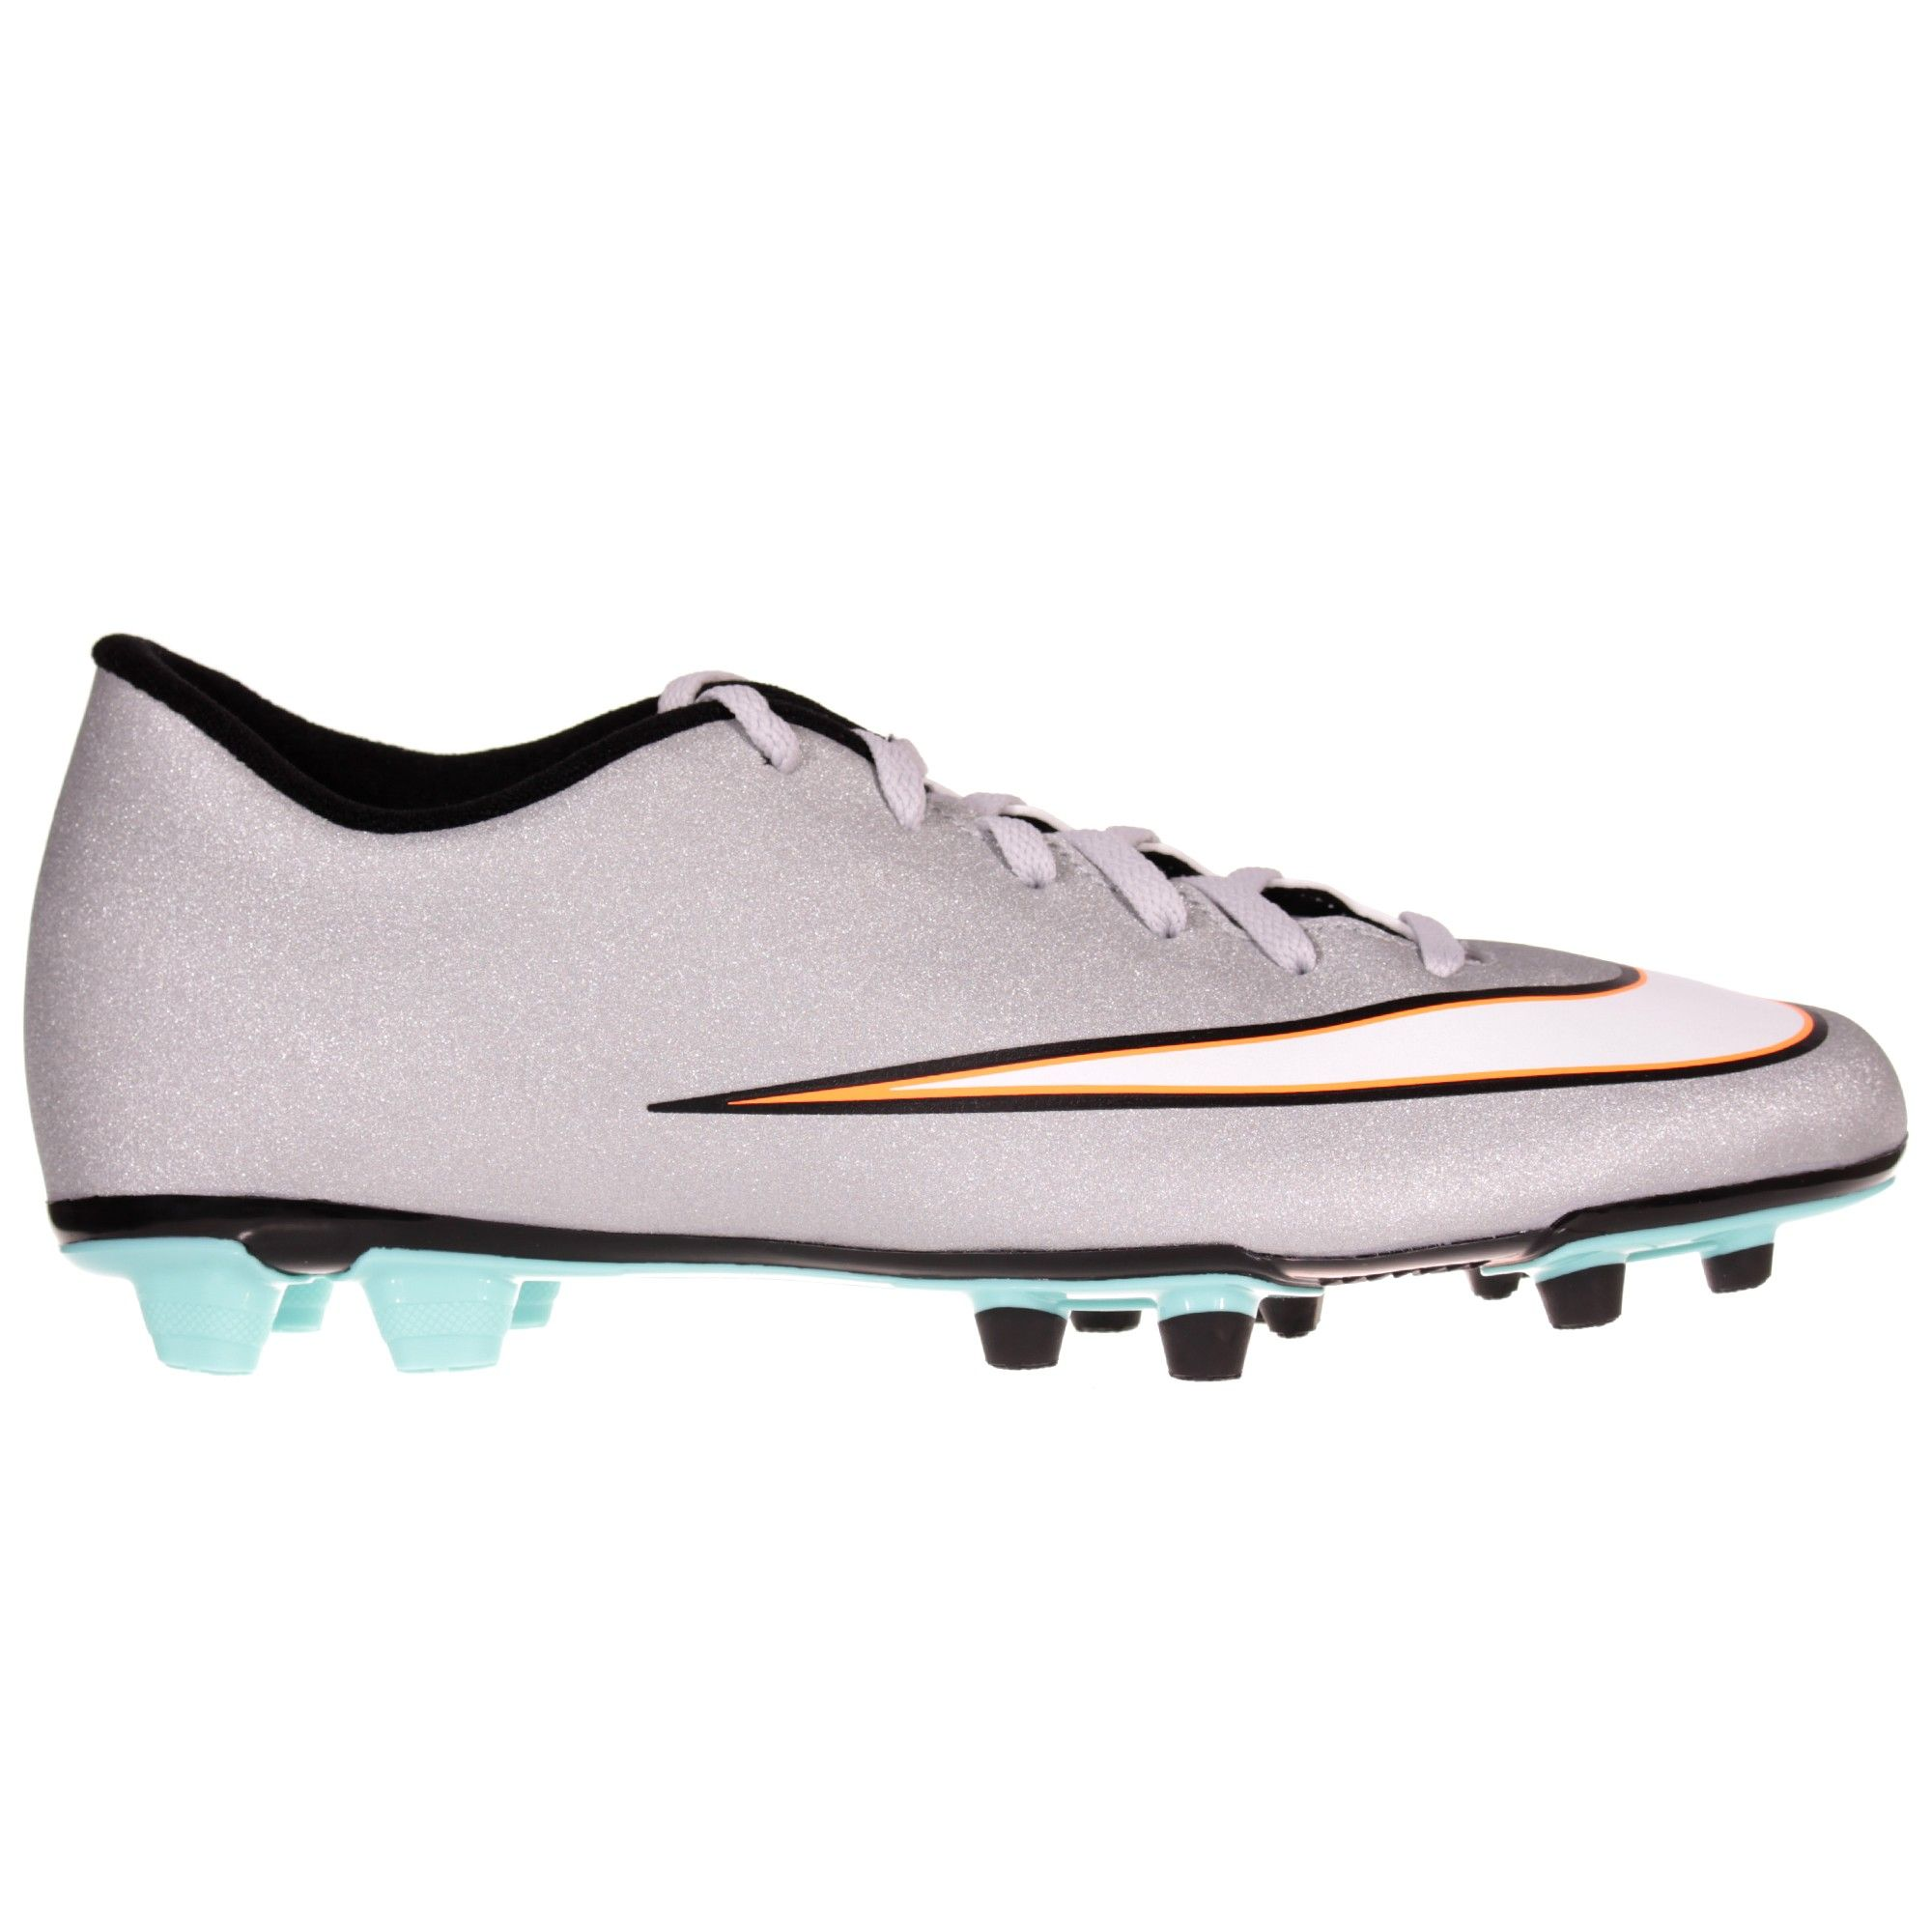 The Nike Mercurial Vortex II Firm Ground Mens Football Boot comes with a  pearlescent silver outer to stand out on pitch like one of the best players  on the ...